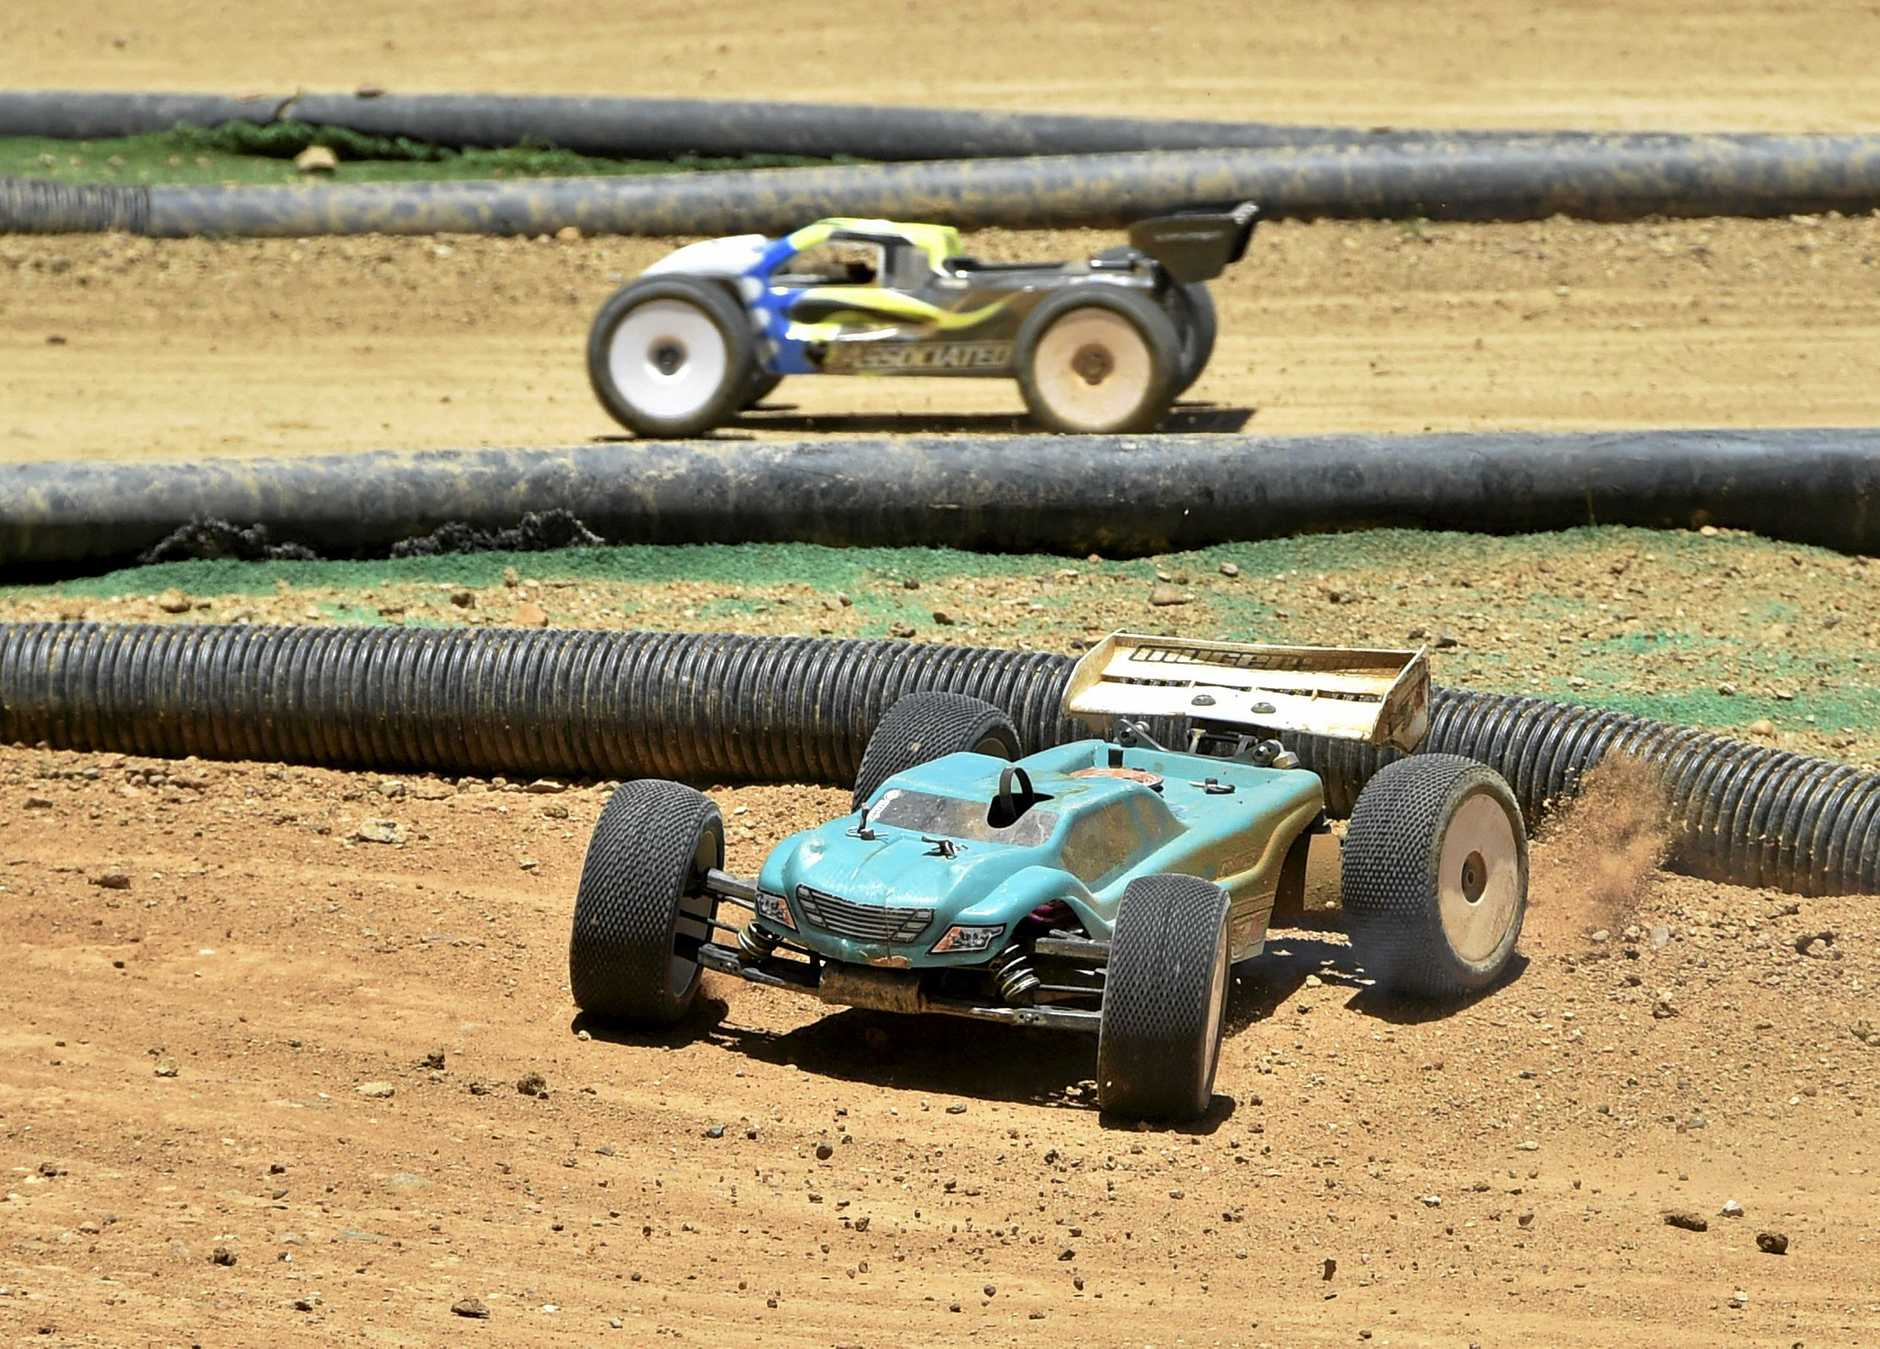 Remote control car competition at Toowoomba Showgrounds November 2017